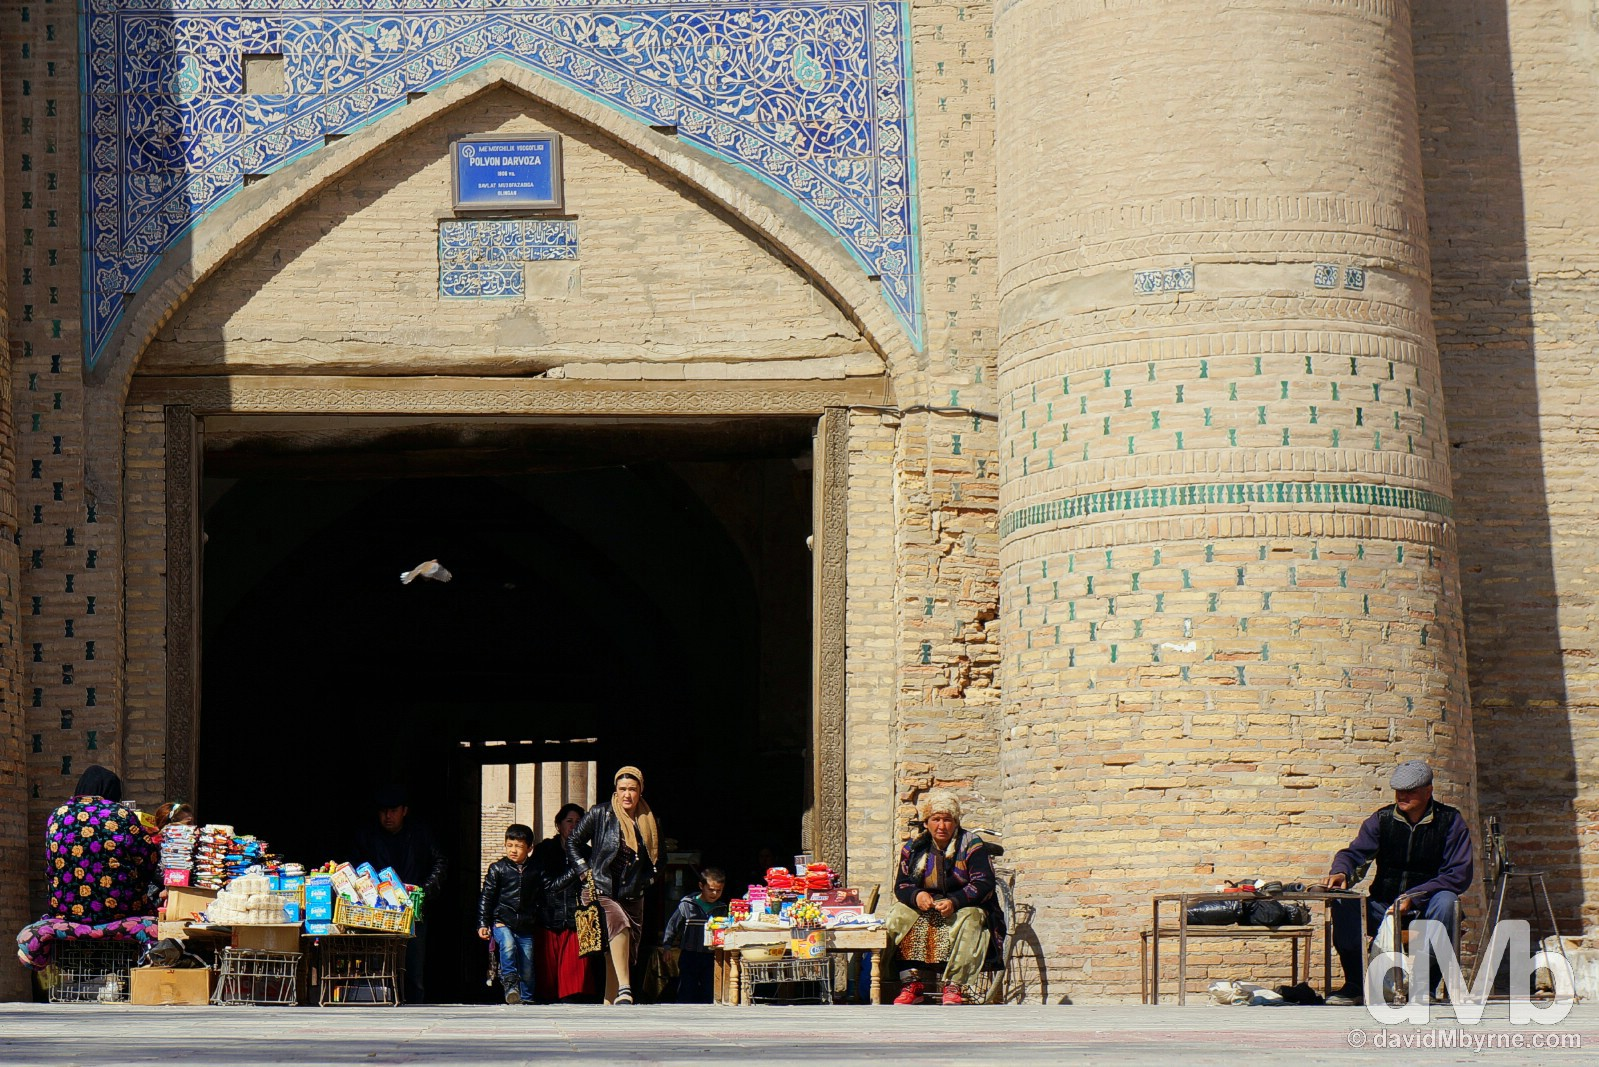 The East Gate, or Polvon Darvoza, of the city walls in Khiva, Uzbekistan. March 14, 2015.